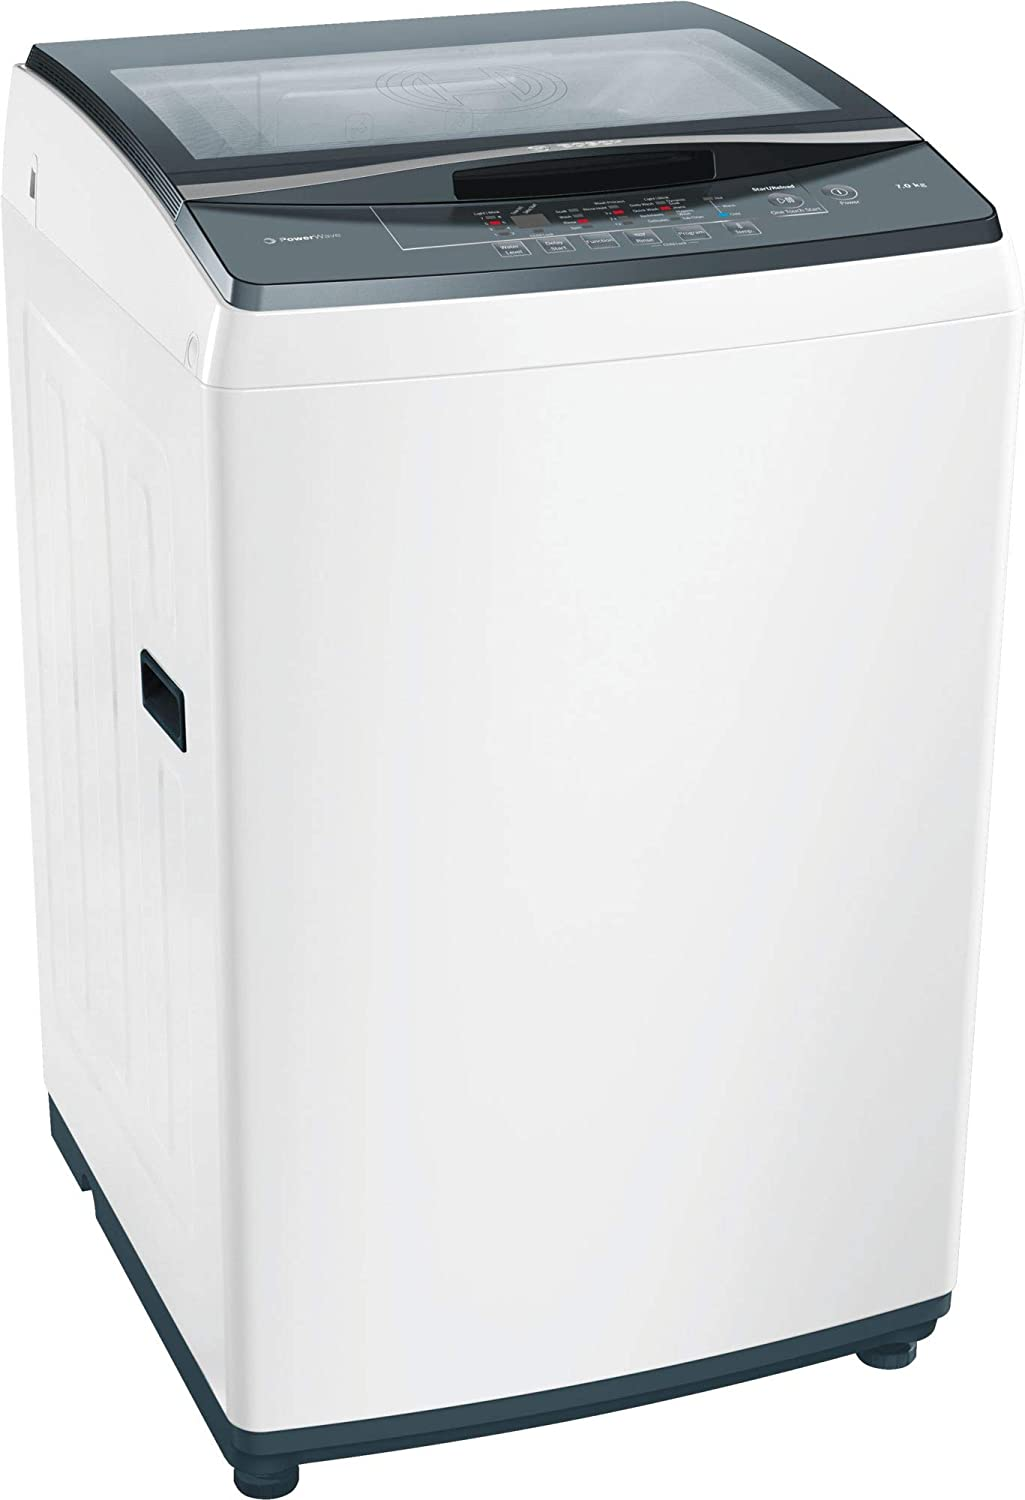 Bosch 7kg Fully Automatic Top Loading Washing